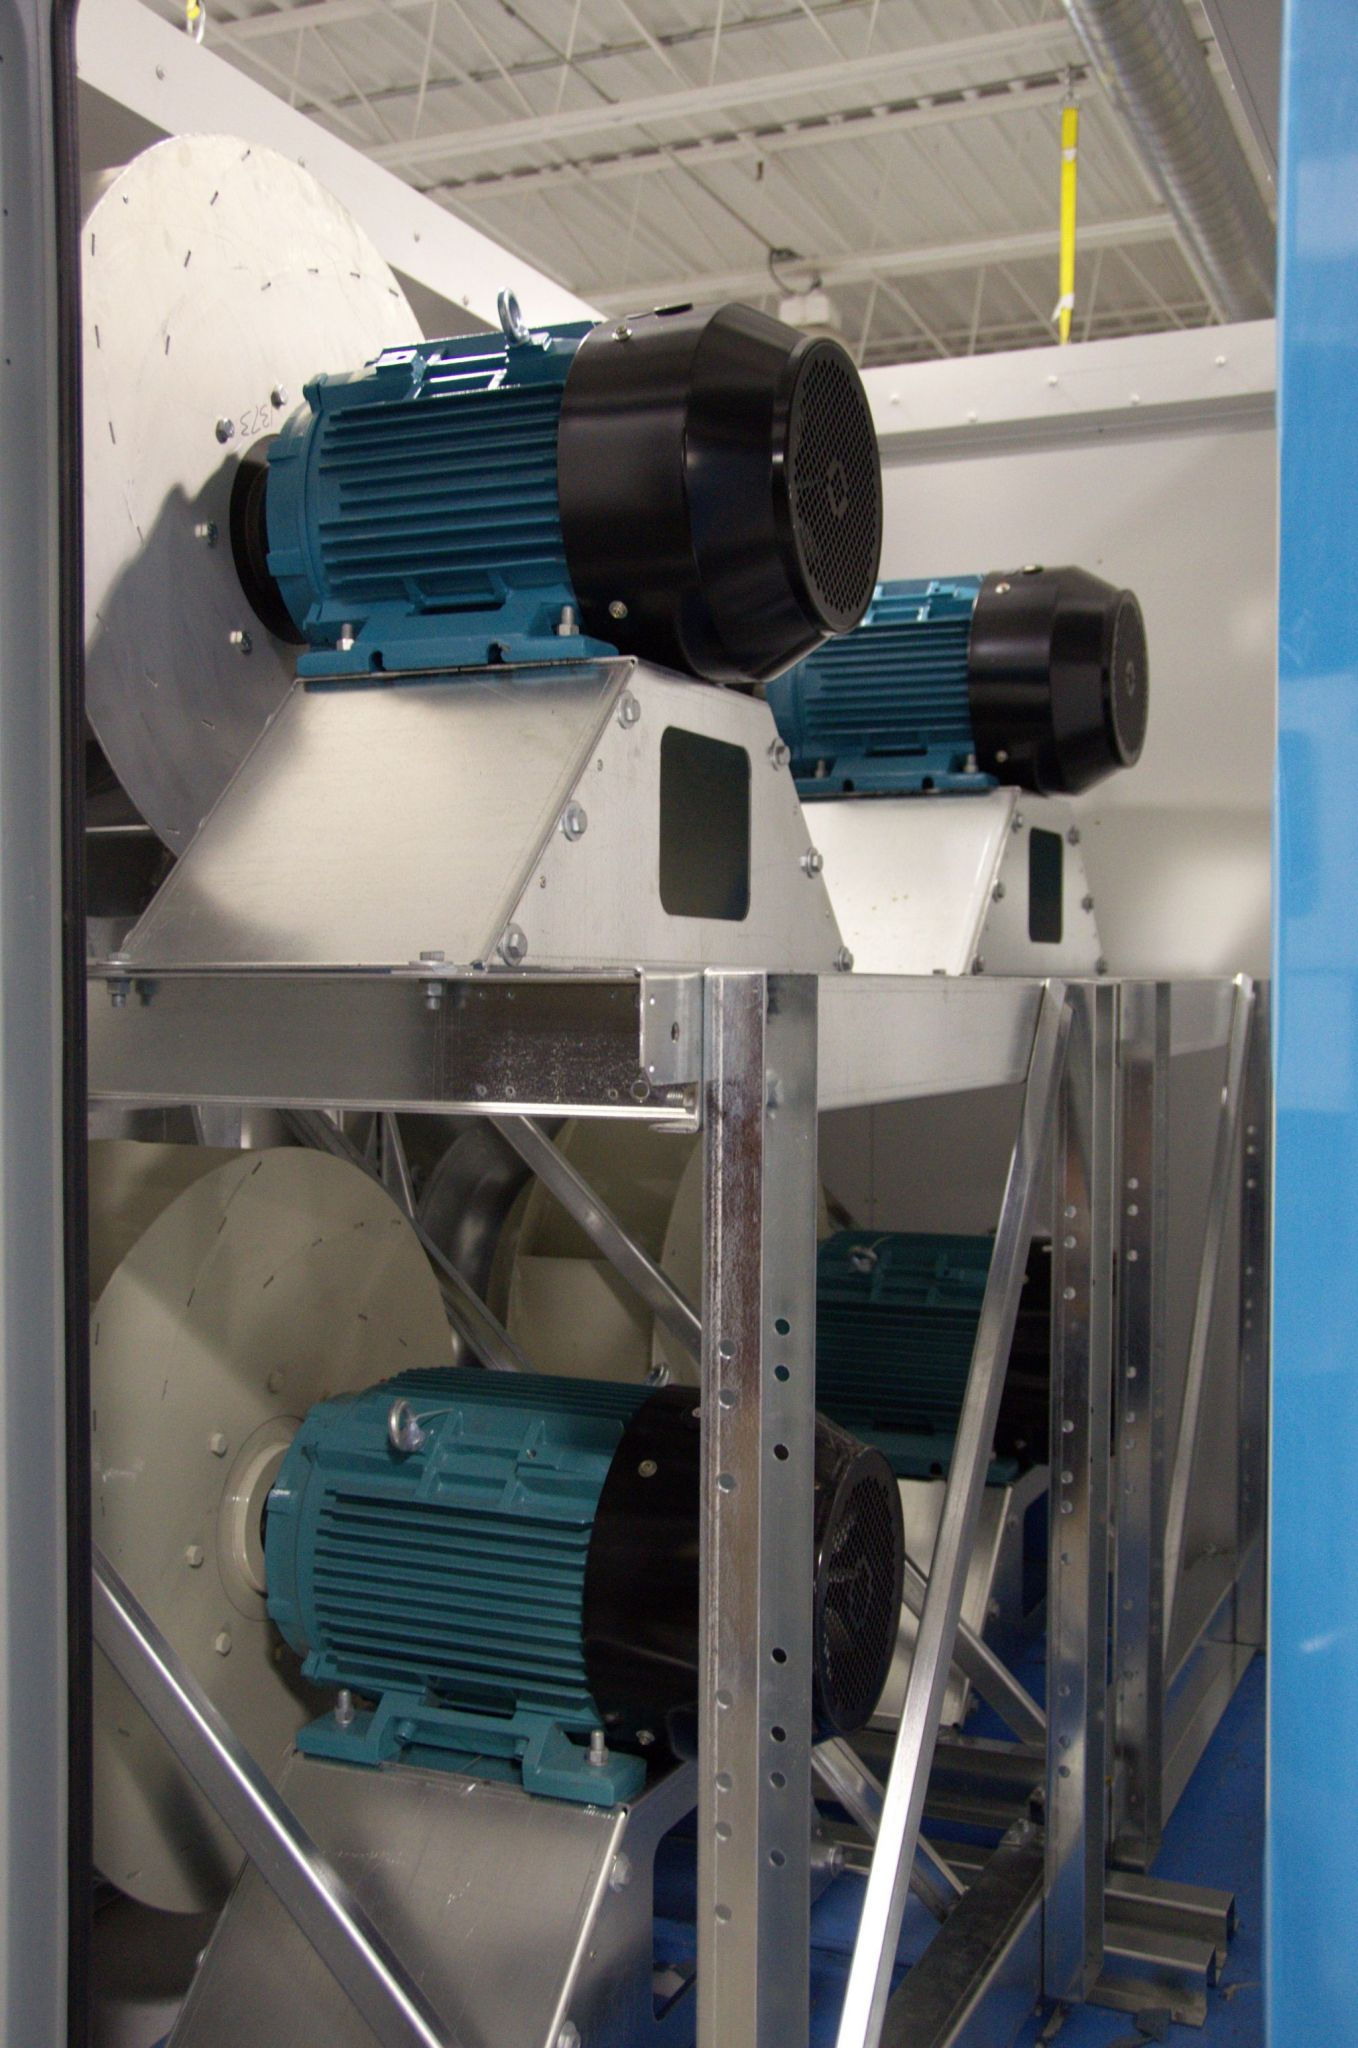 Direct-drive plenum fans, such as these in a dehumidifi er, connect the motor directly to the fan shaft, eliminating friction, noise, maintenance, and power-transfer ineffi ciencies associated with traditional belt-driven fans. As a result, a direct-drive, plenumstyle fan uses considerably less energy compared to a belt drive.